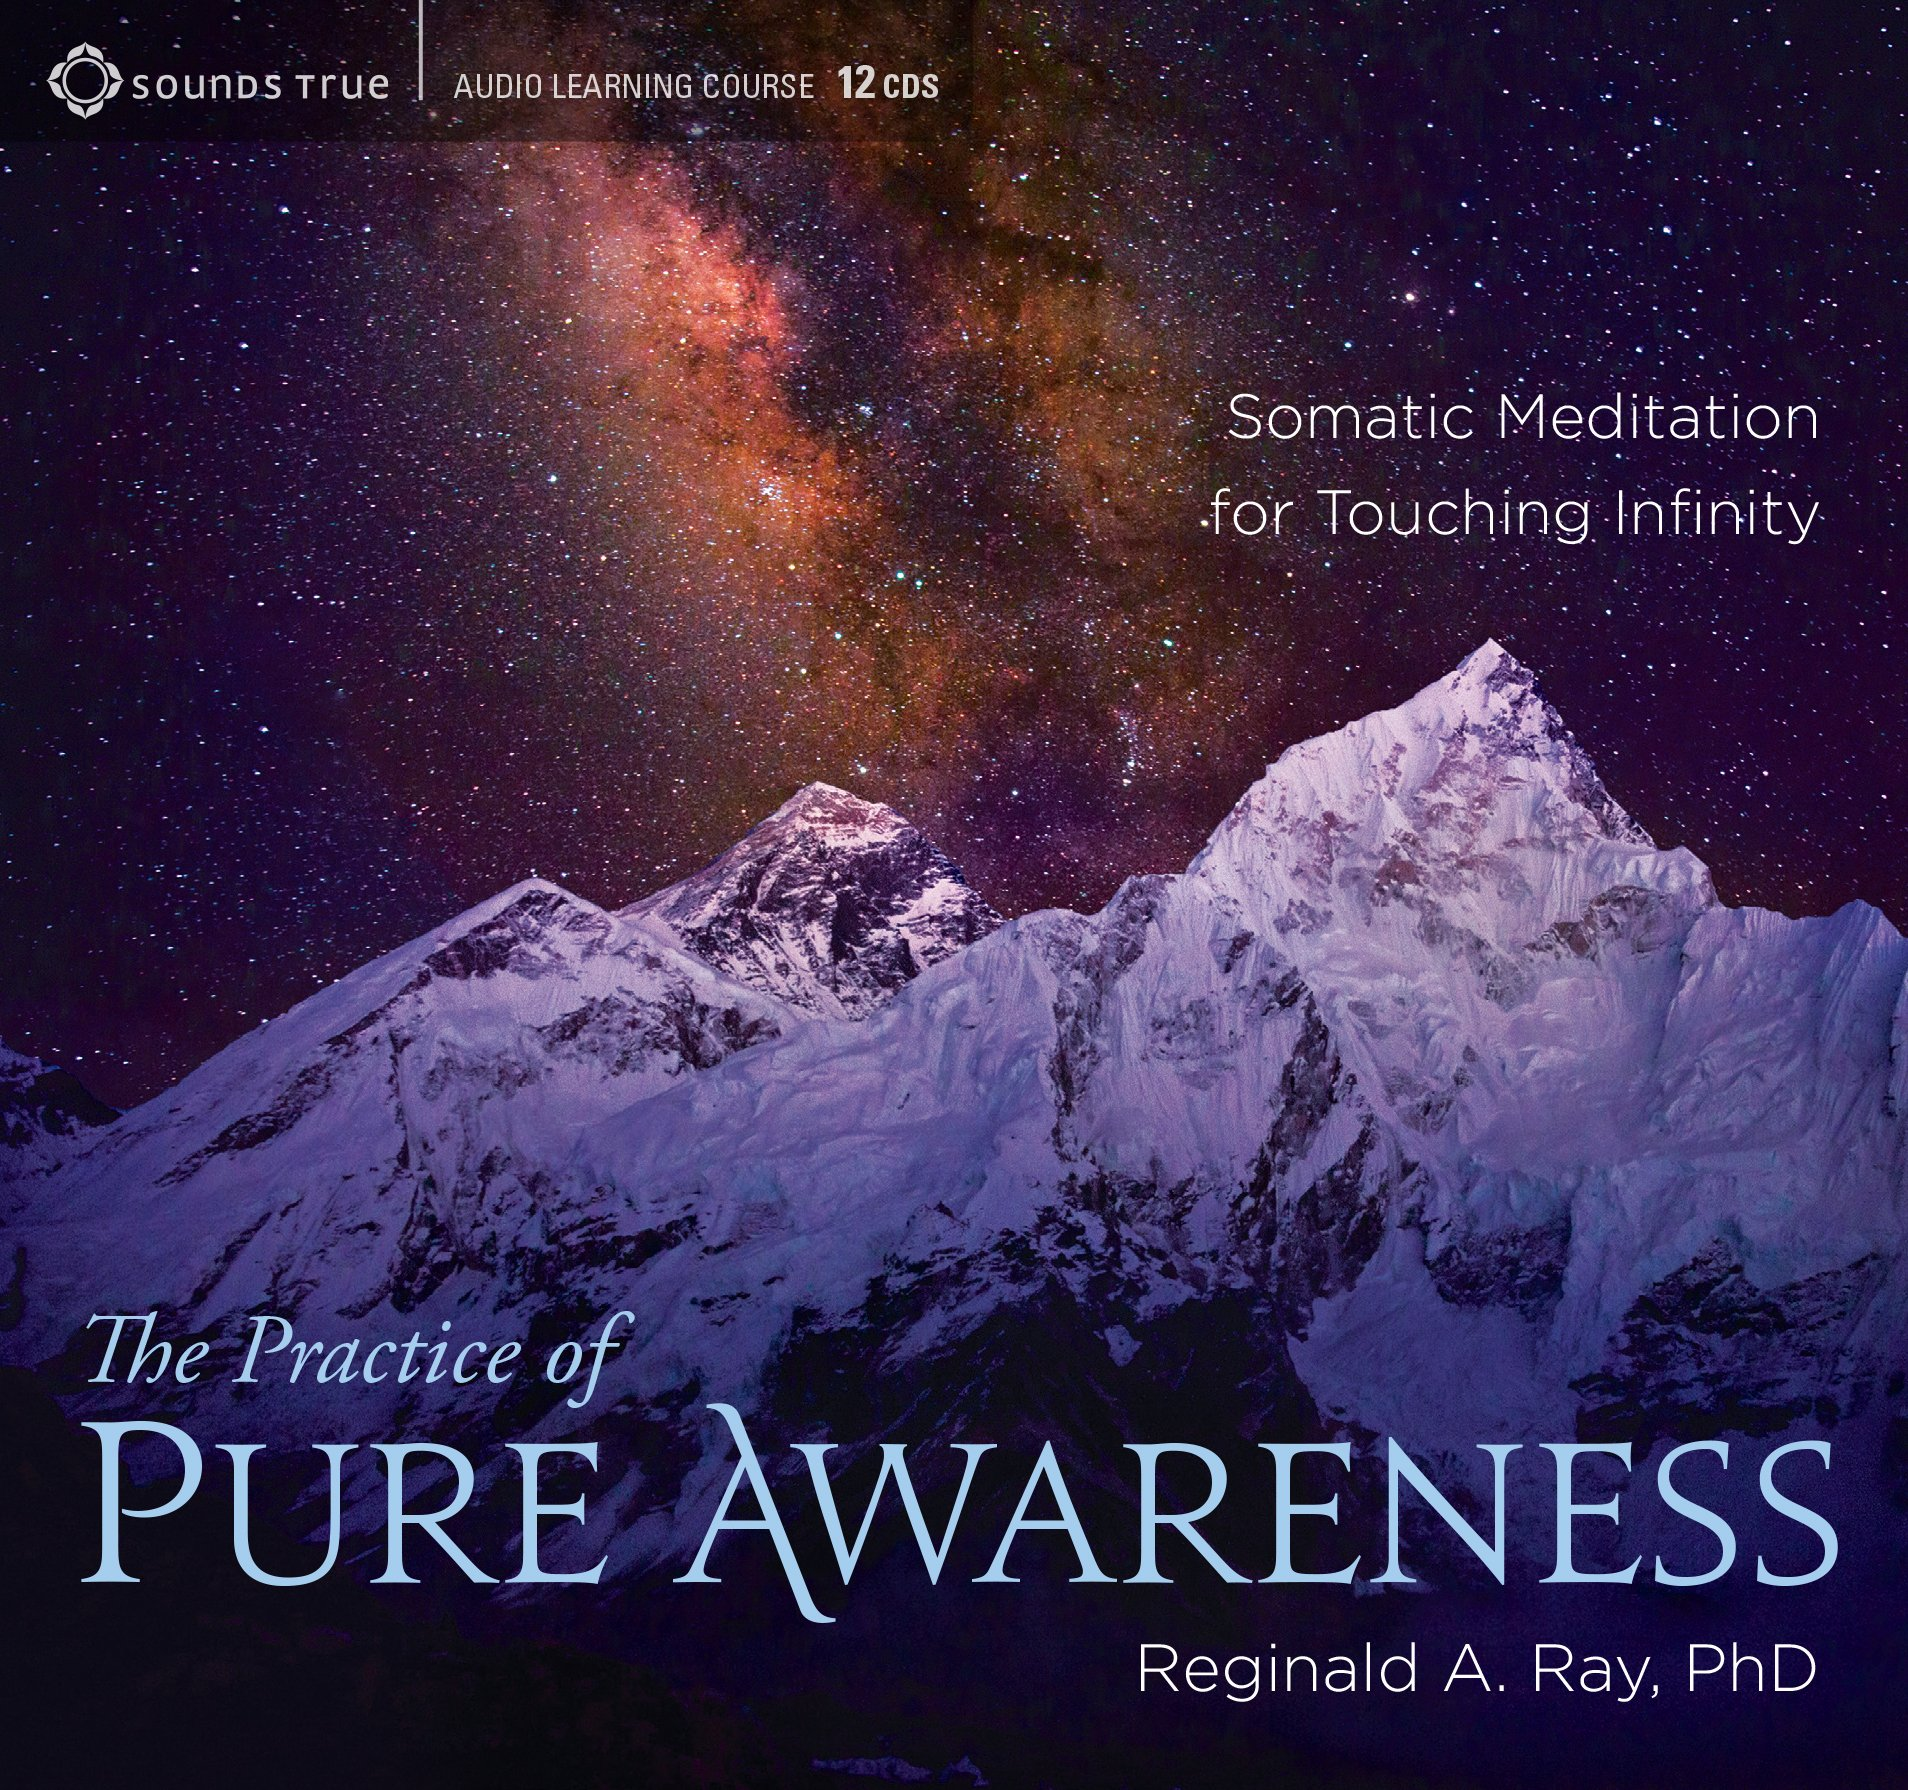 The Practice of Pure Awareness: Somatic Meditation for Touching Infinity by SOUNDS TRUE RECORDS